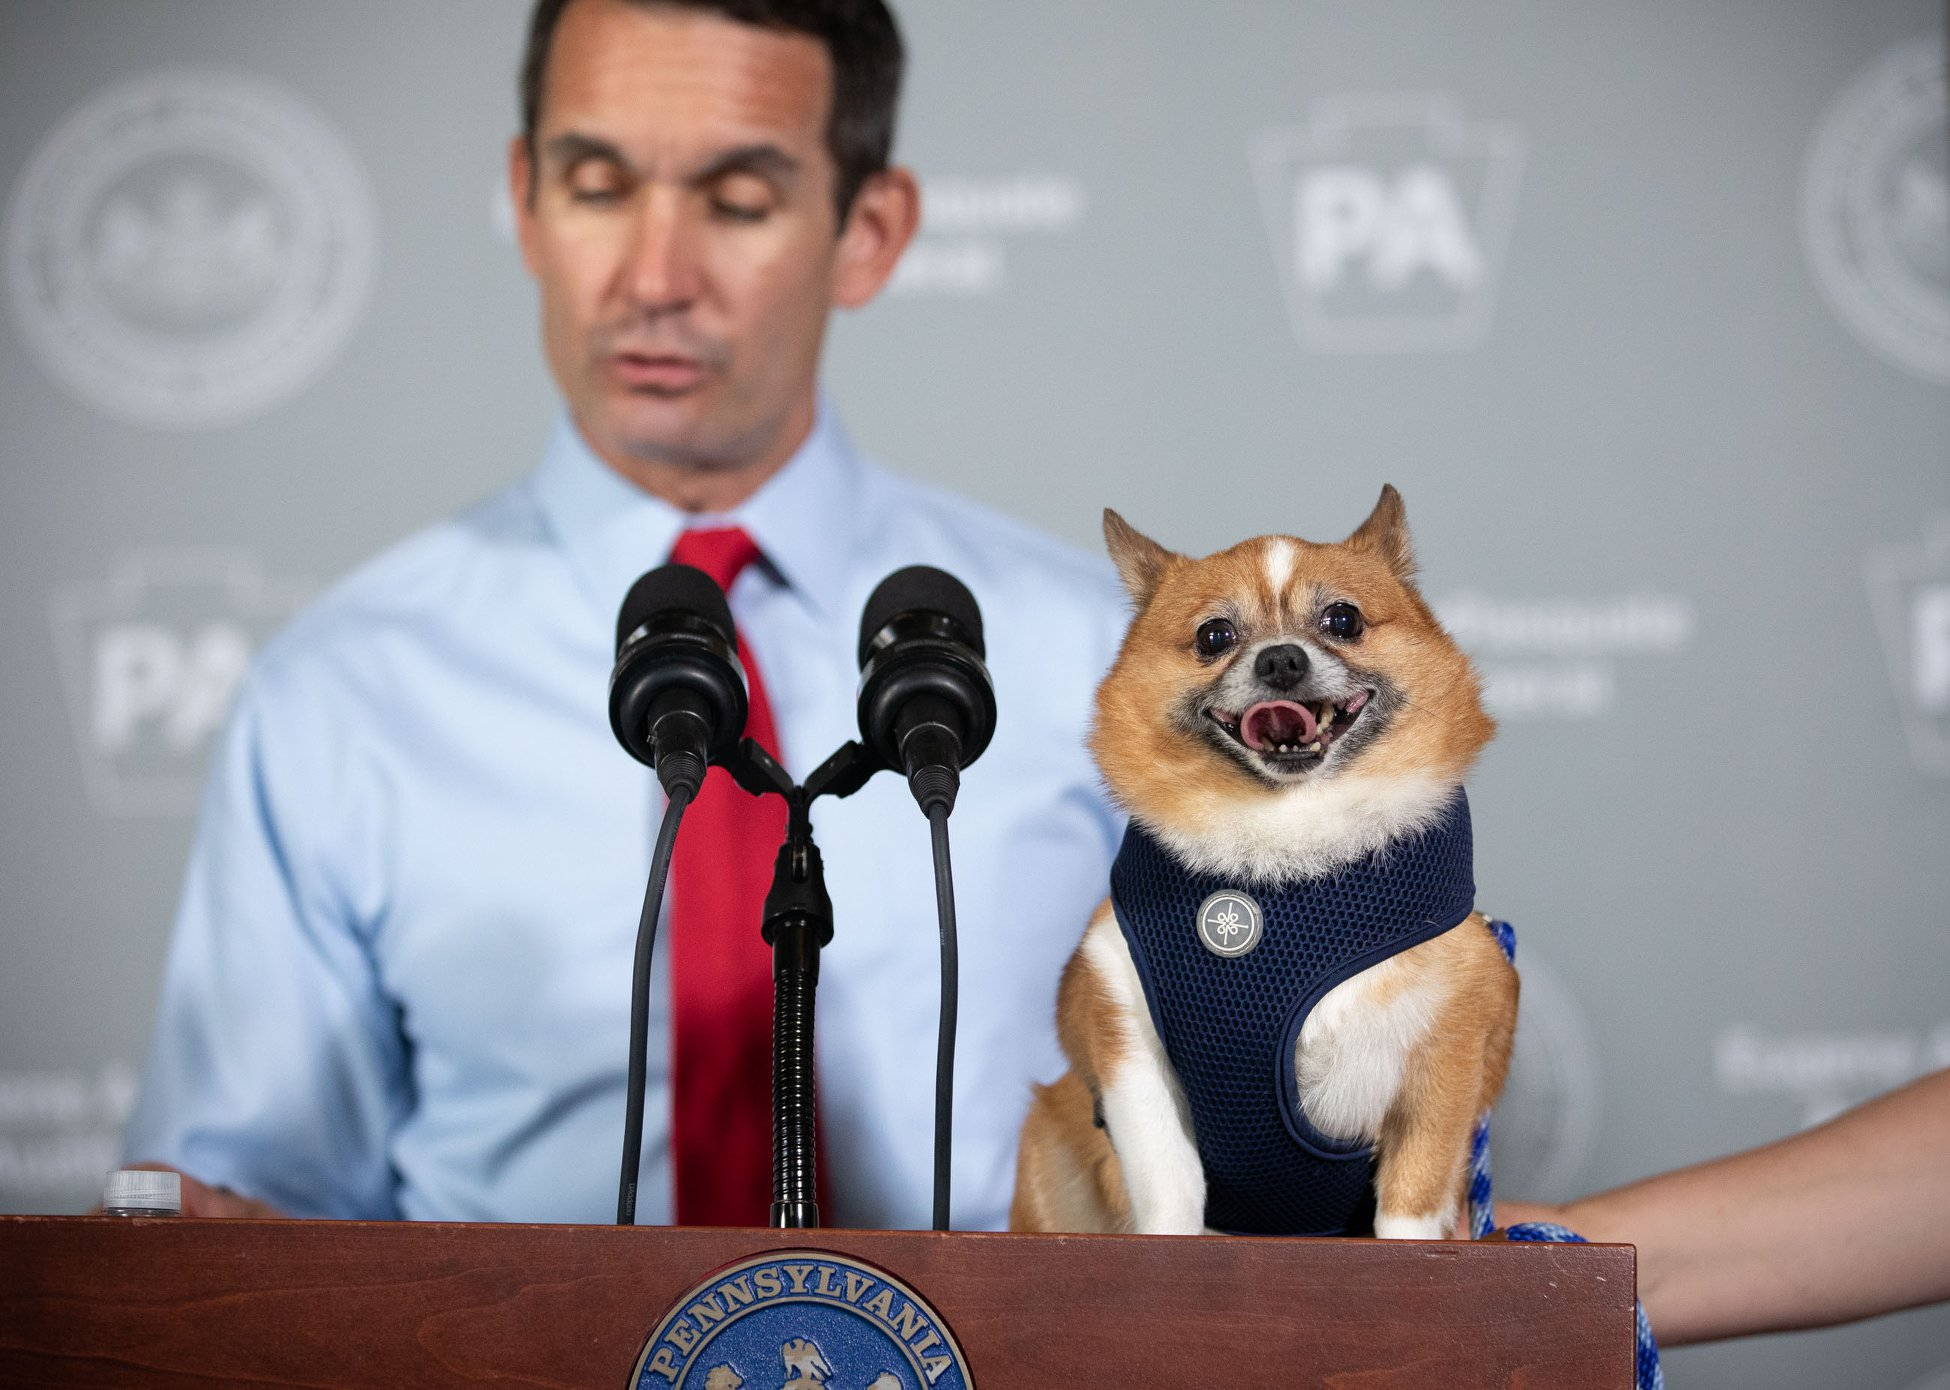 Auditor with Dog